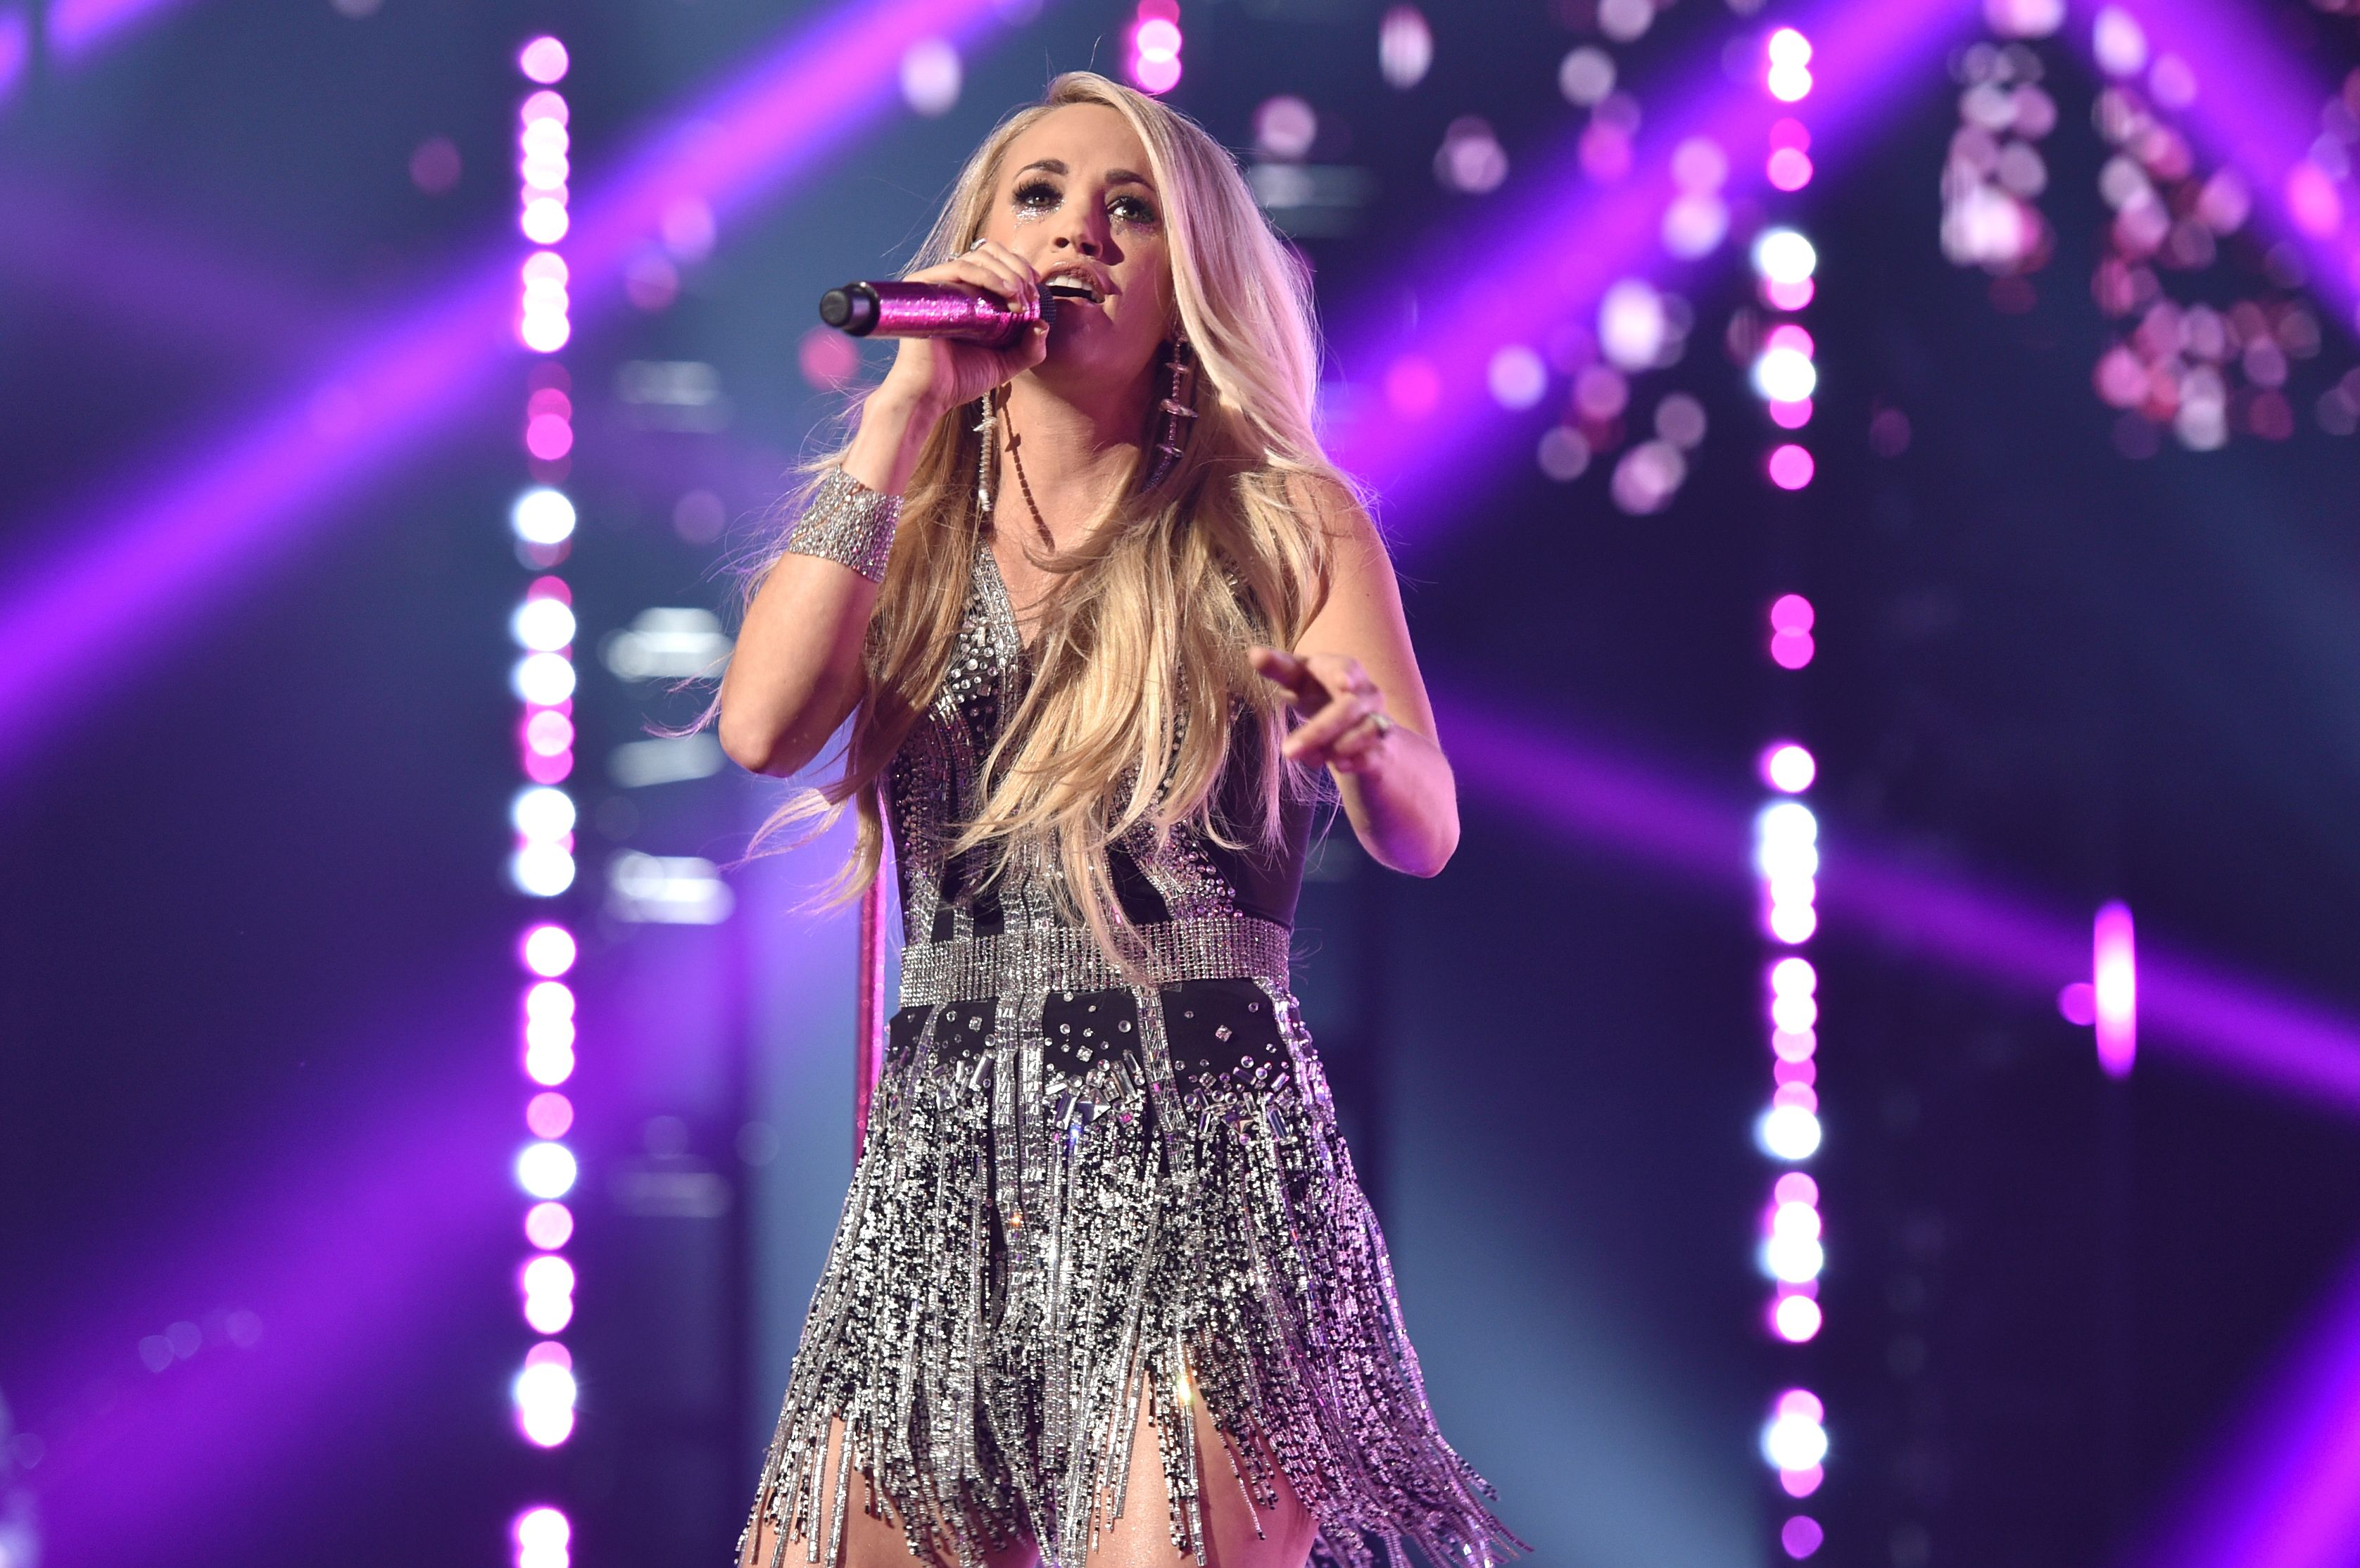 Carrie Underwood Reveals Face Fall 'Wasn't Pretty'